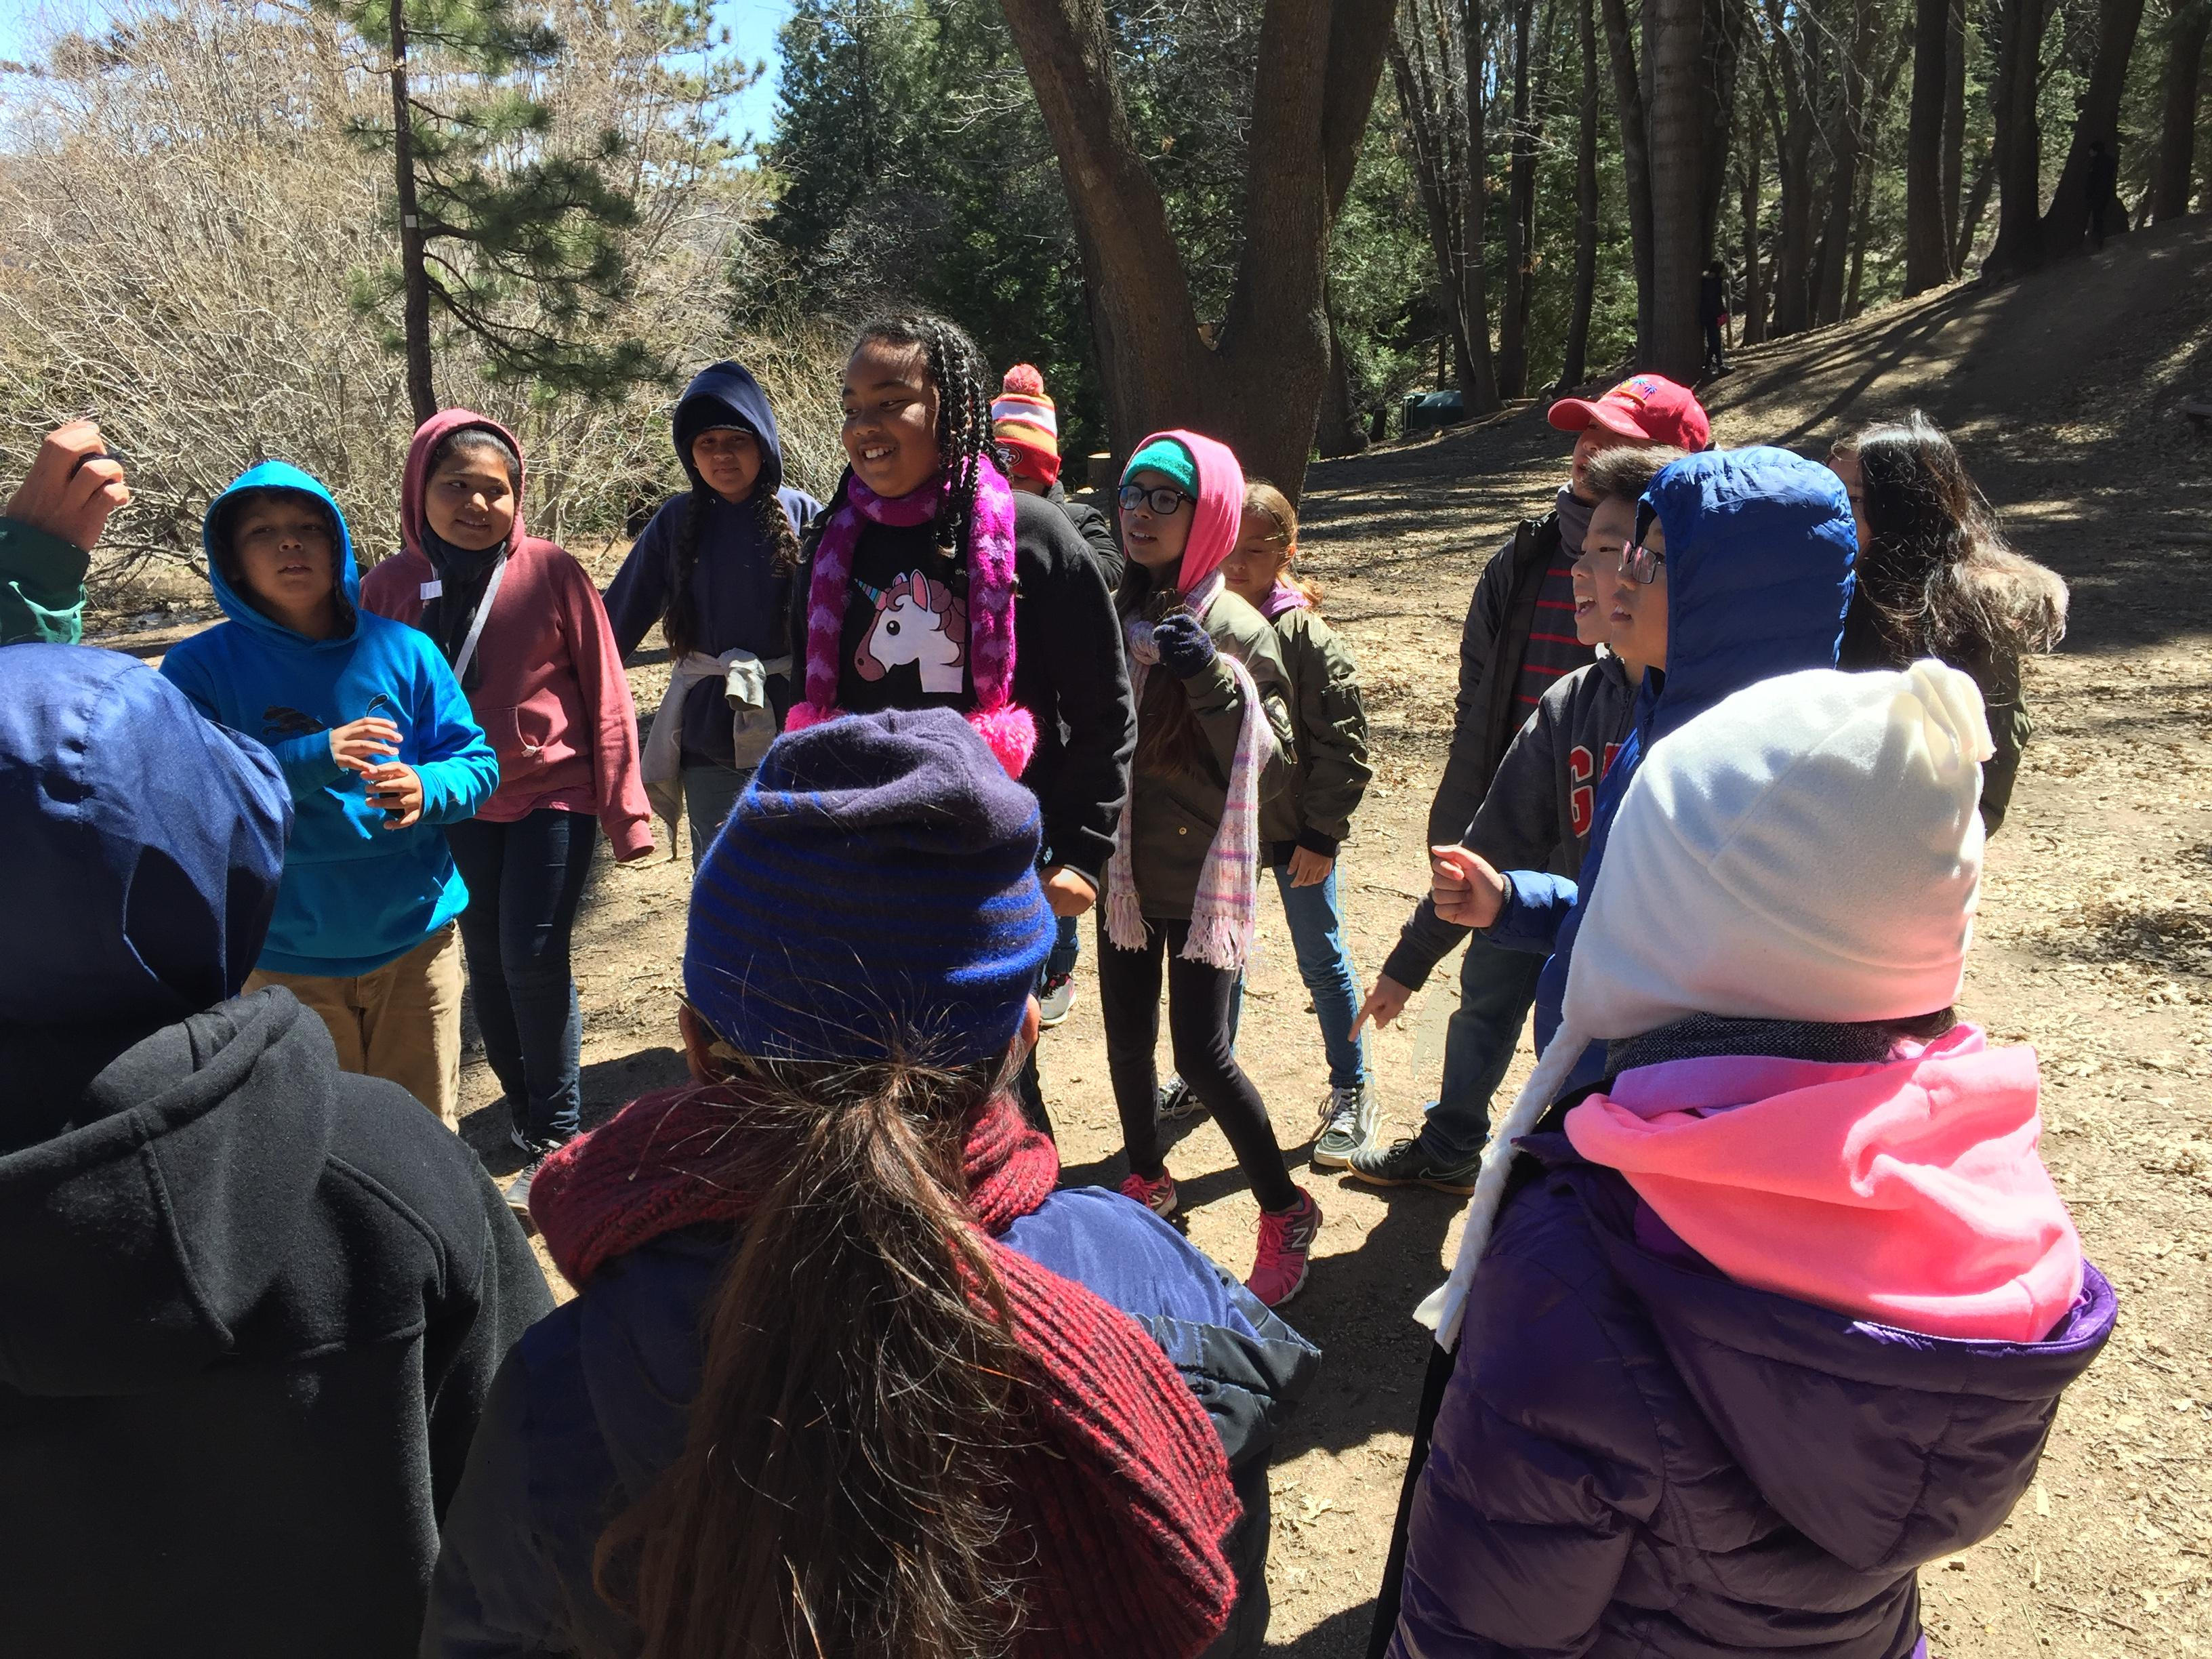 Several students at outdoor camp, playing a game in their winter clothes.